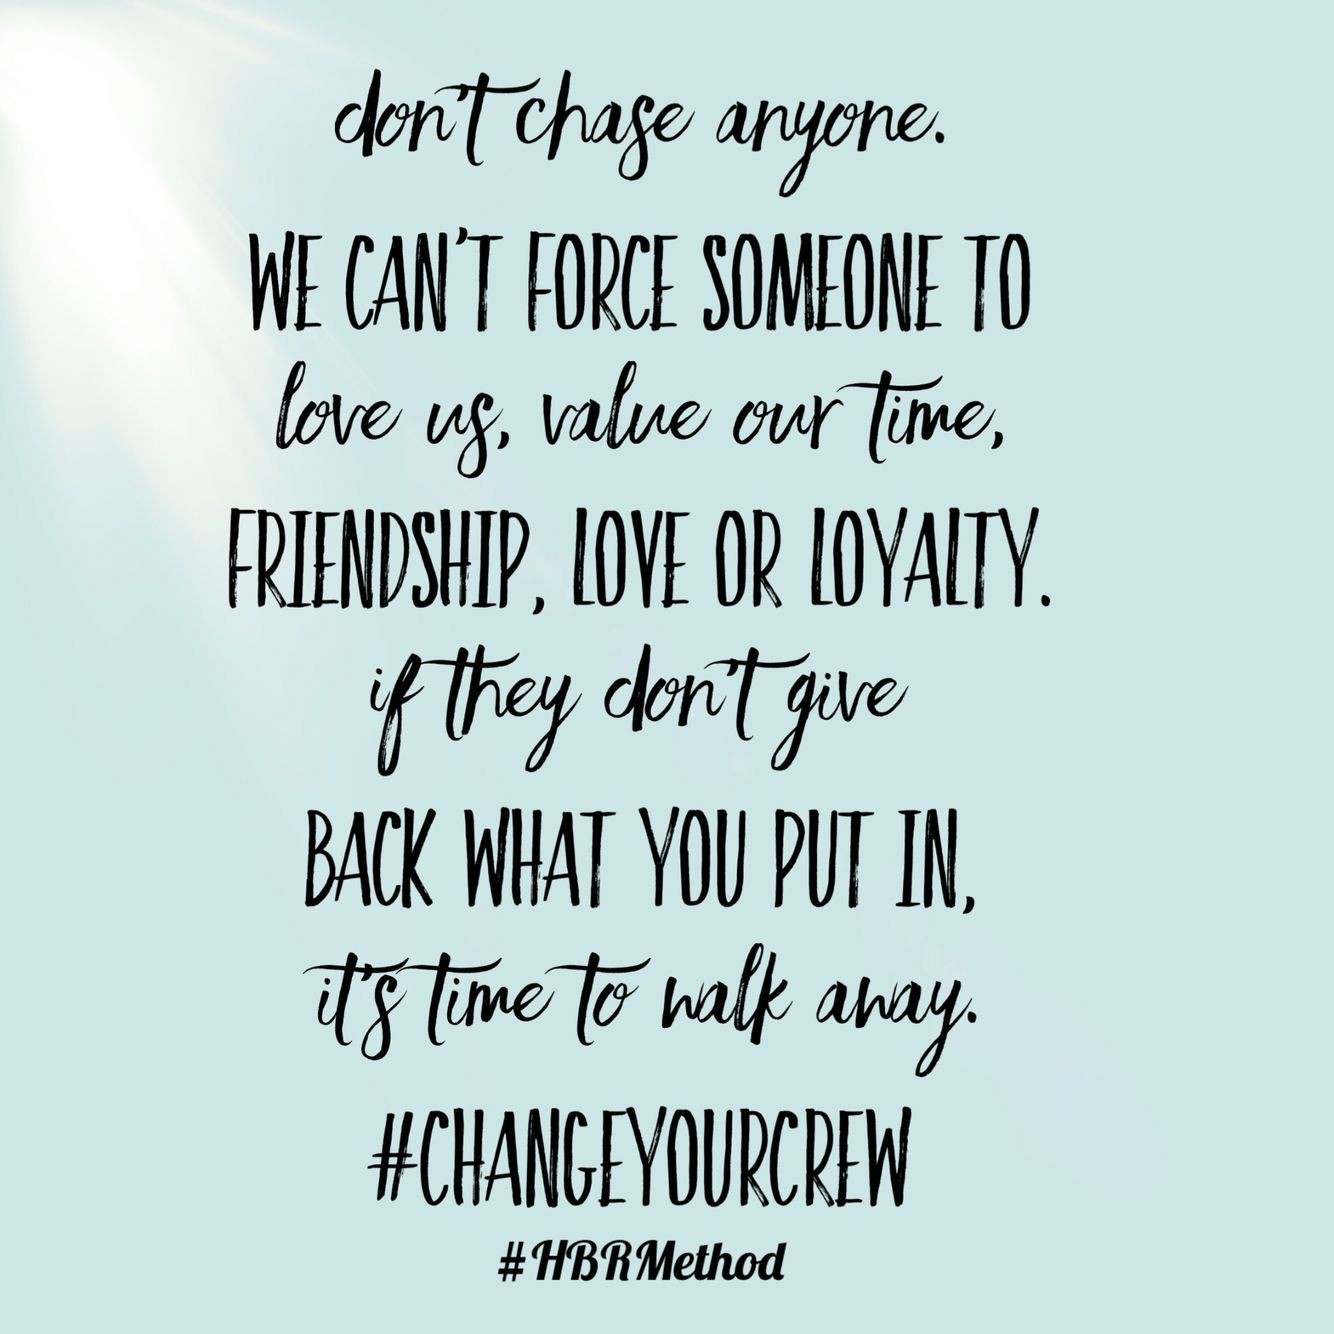 Quotes About Loyalty And Friendship Change Your Crewquote Love Loyalty Friendship Hbrmethod